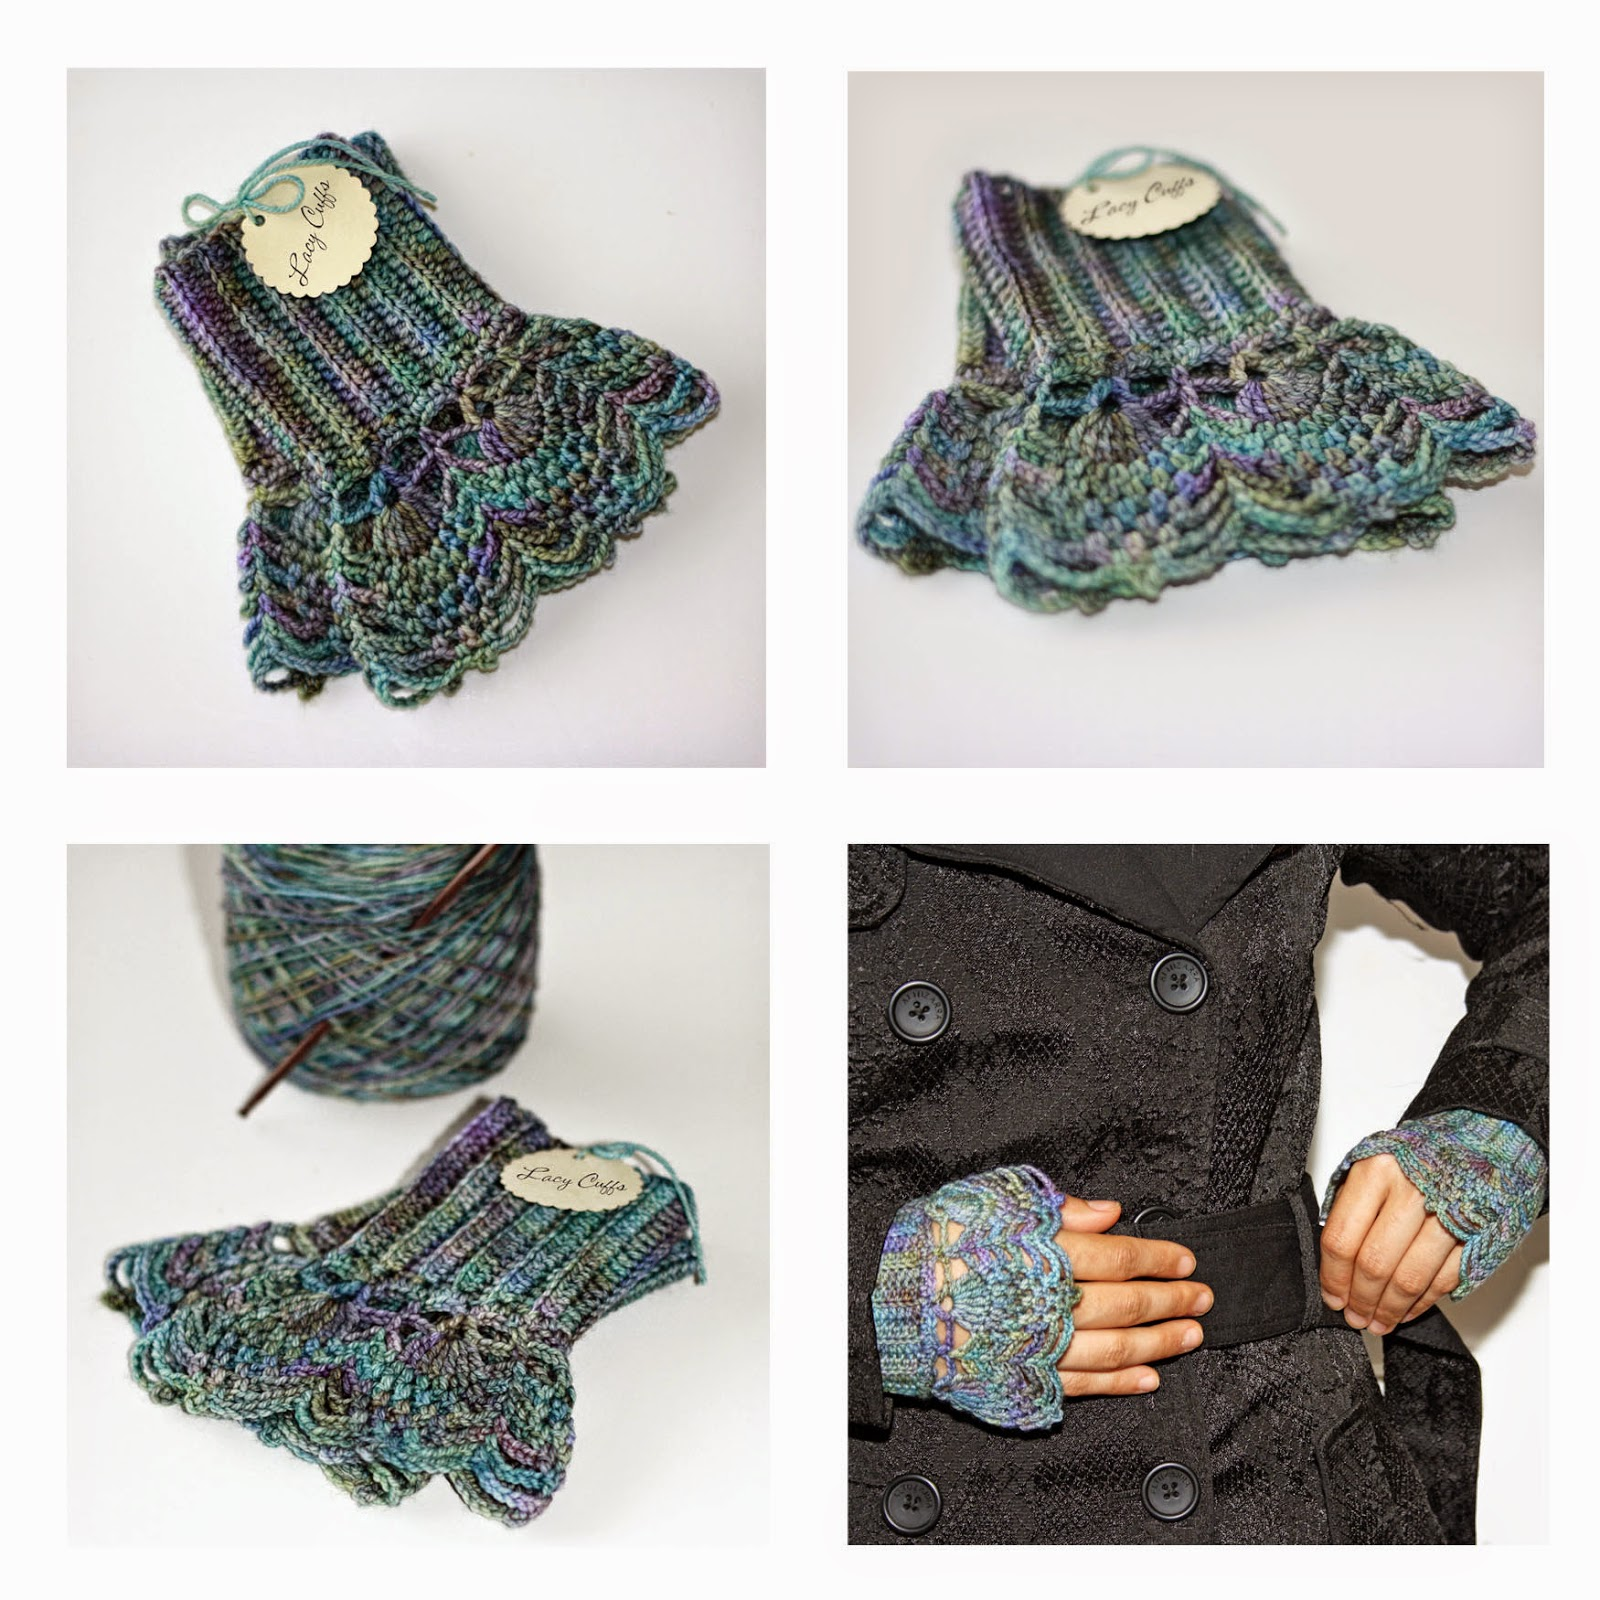 http://www.ravelry.com/patterns/library/lacy-cuffs-3